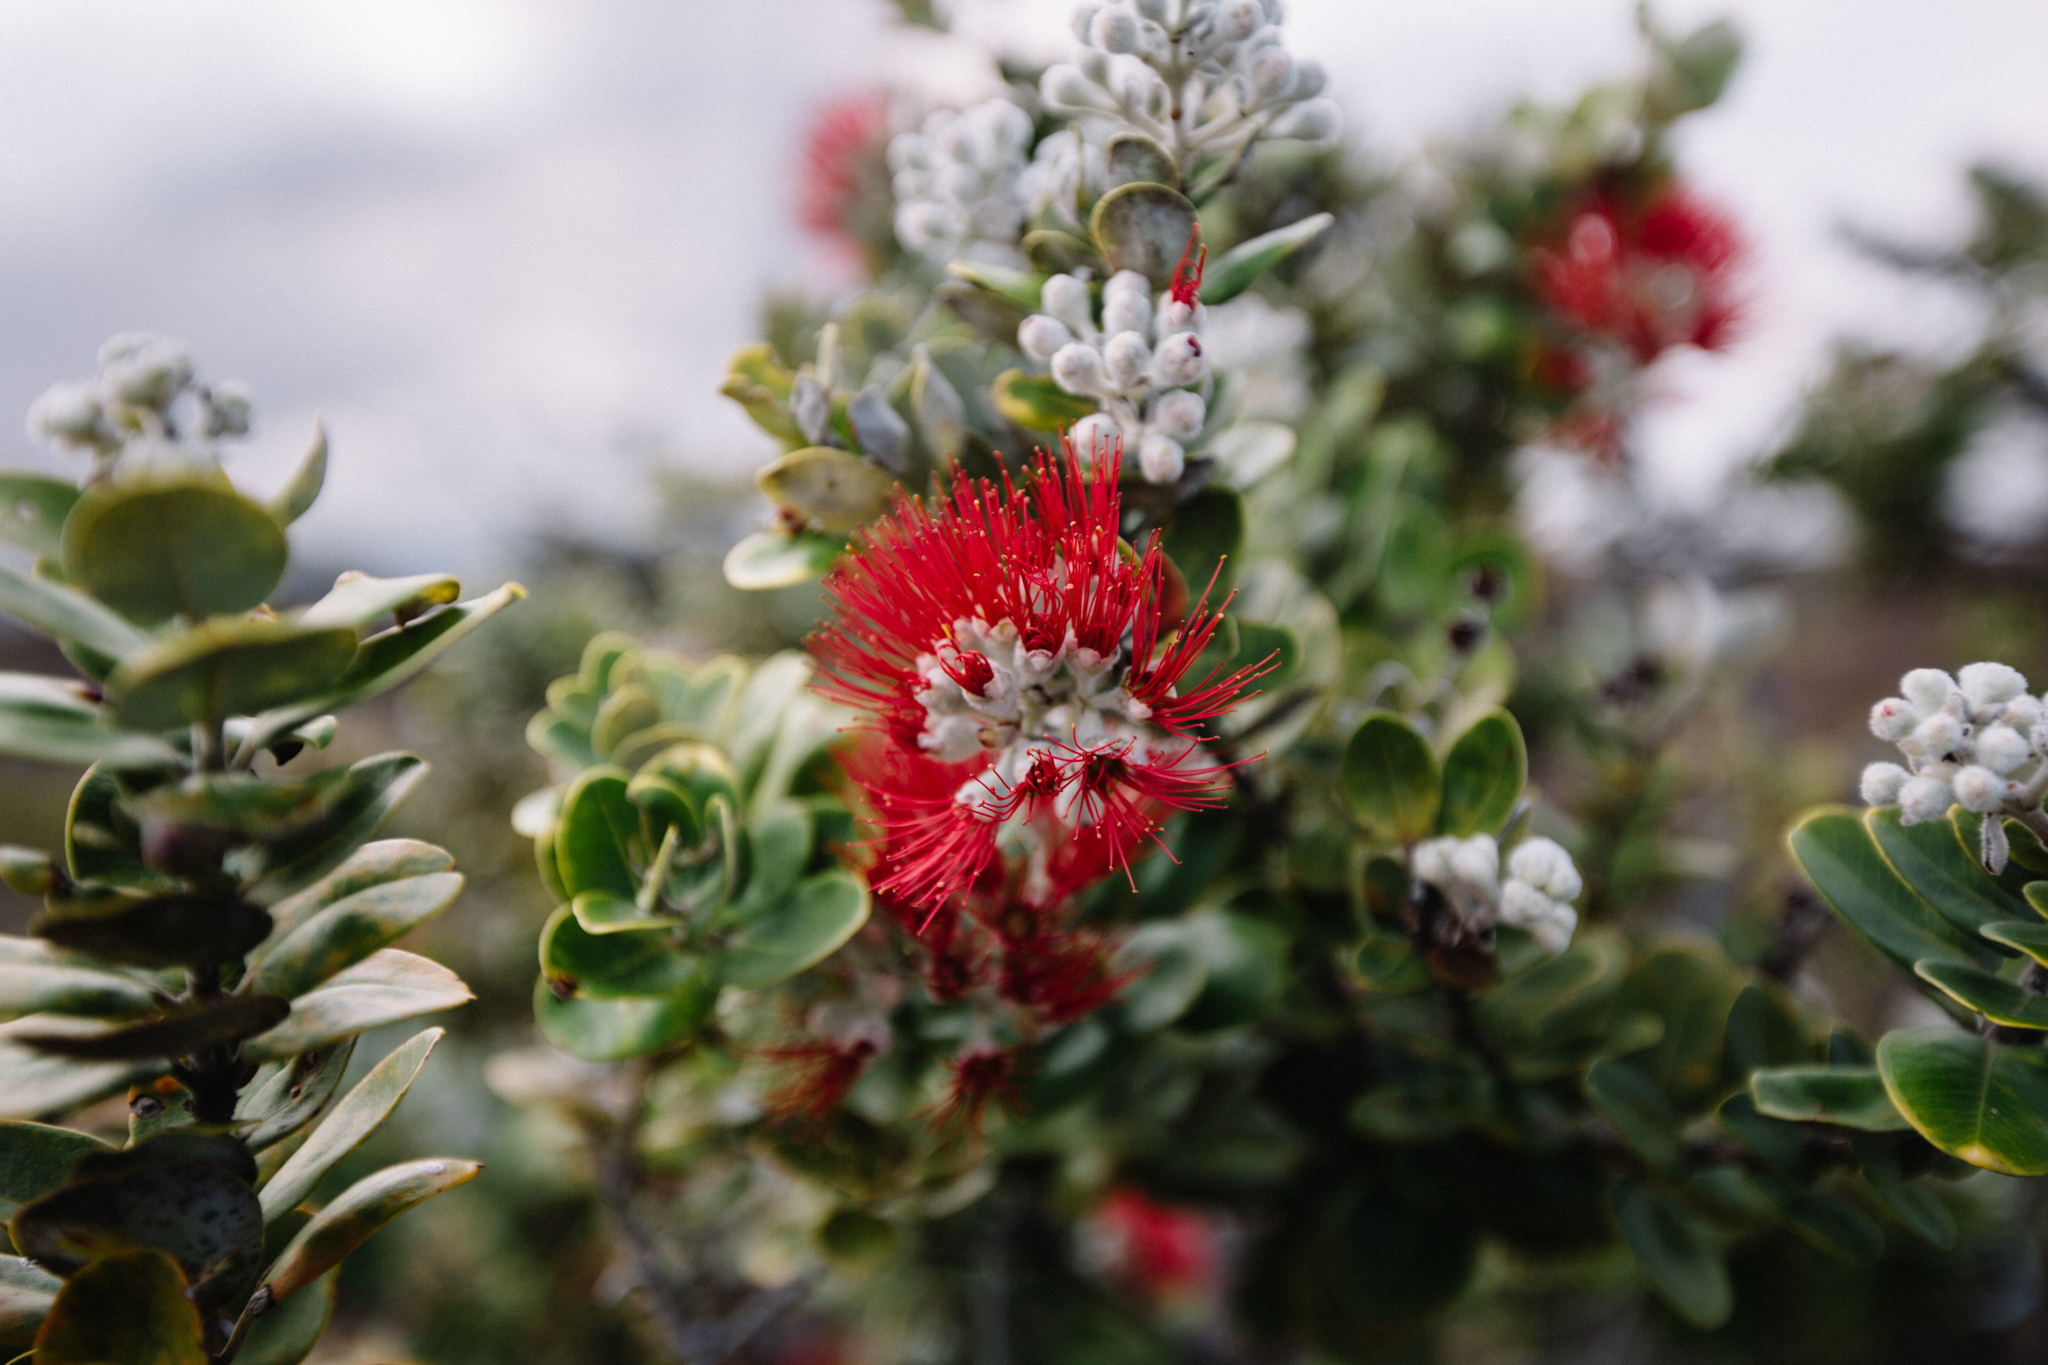 This incredible plant is named 'ohi'a lehua. It can grow in between the cracks in lava rock, and, in case of volcanic gases, it can close its stoma to keep sulfur dioxide out.